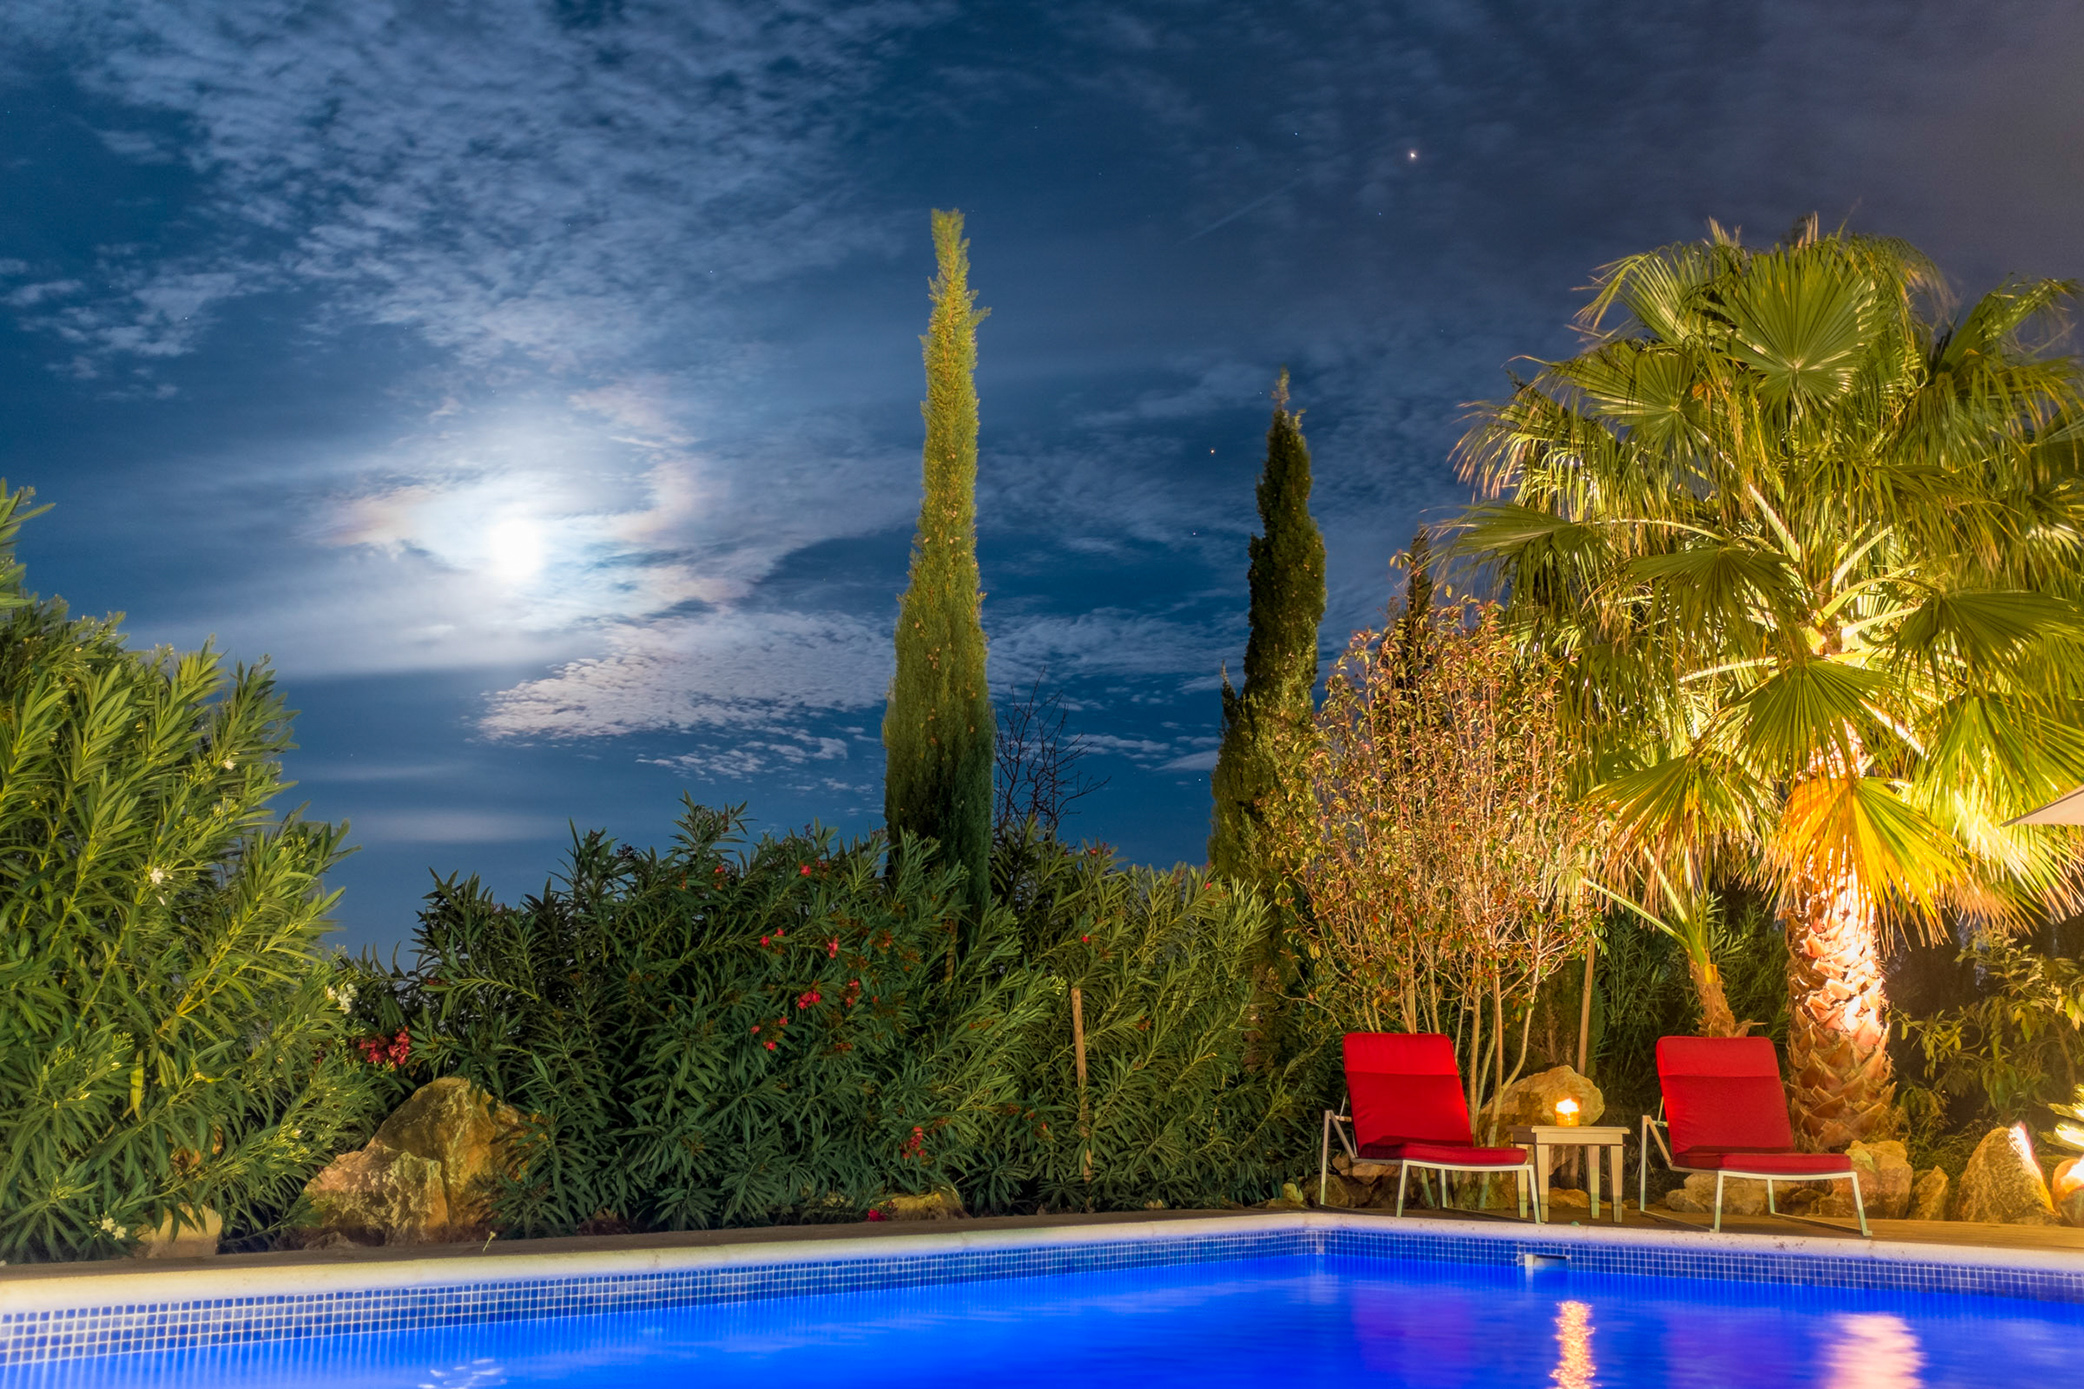 Pool at night2.jpg